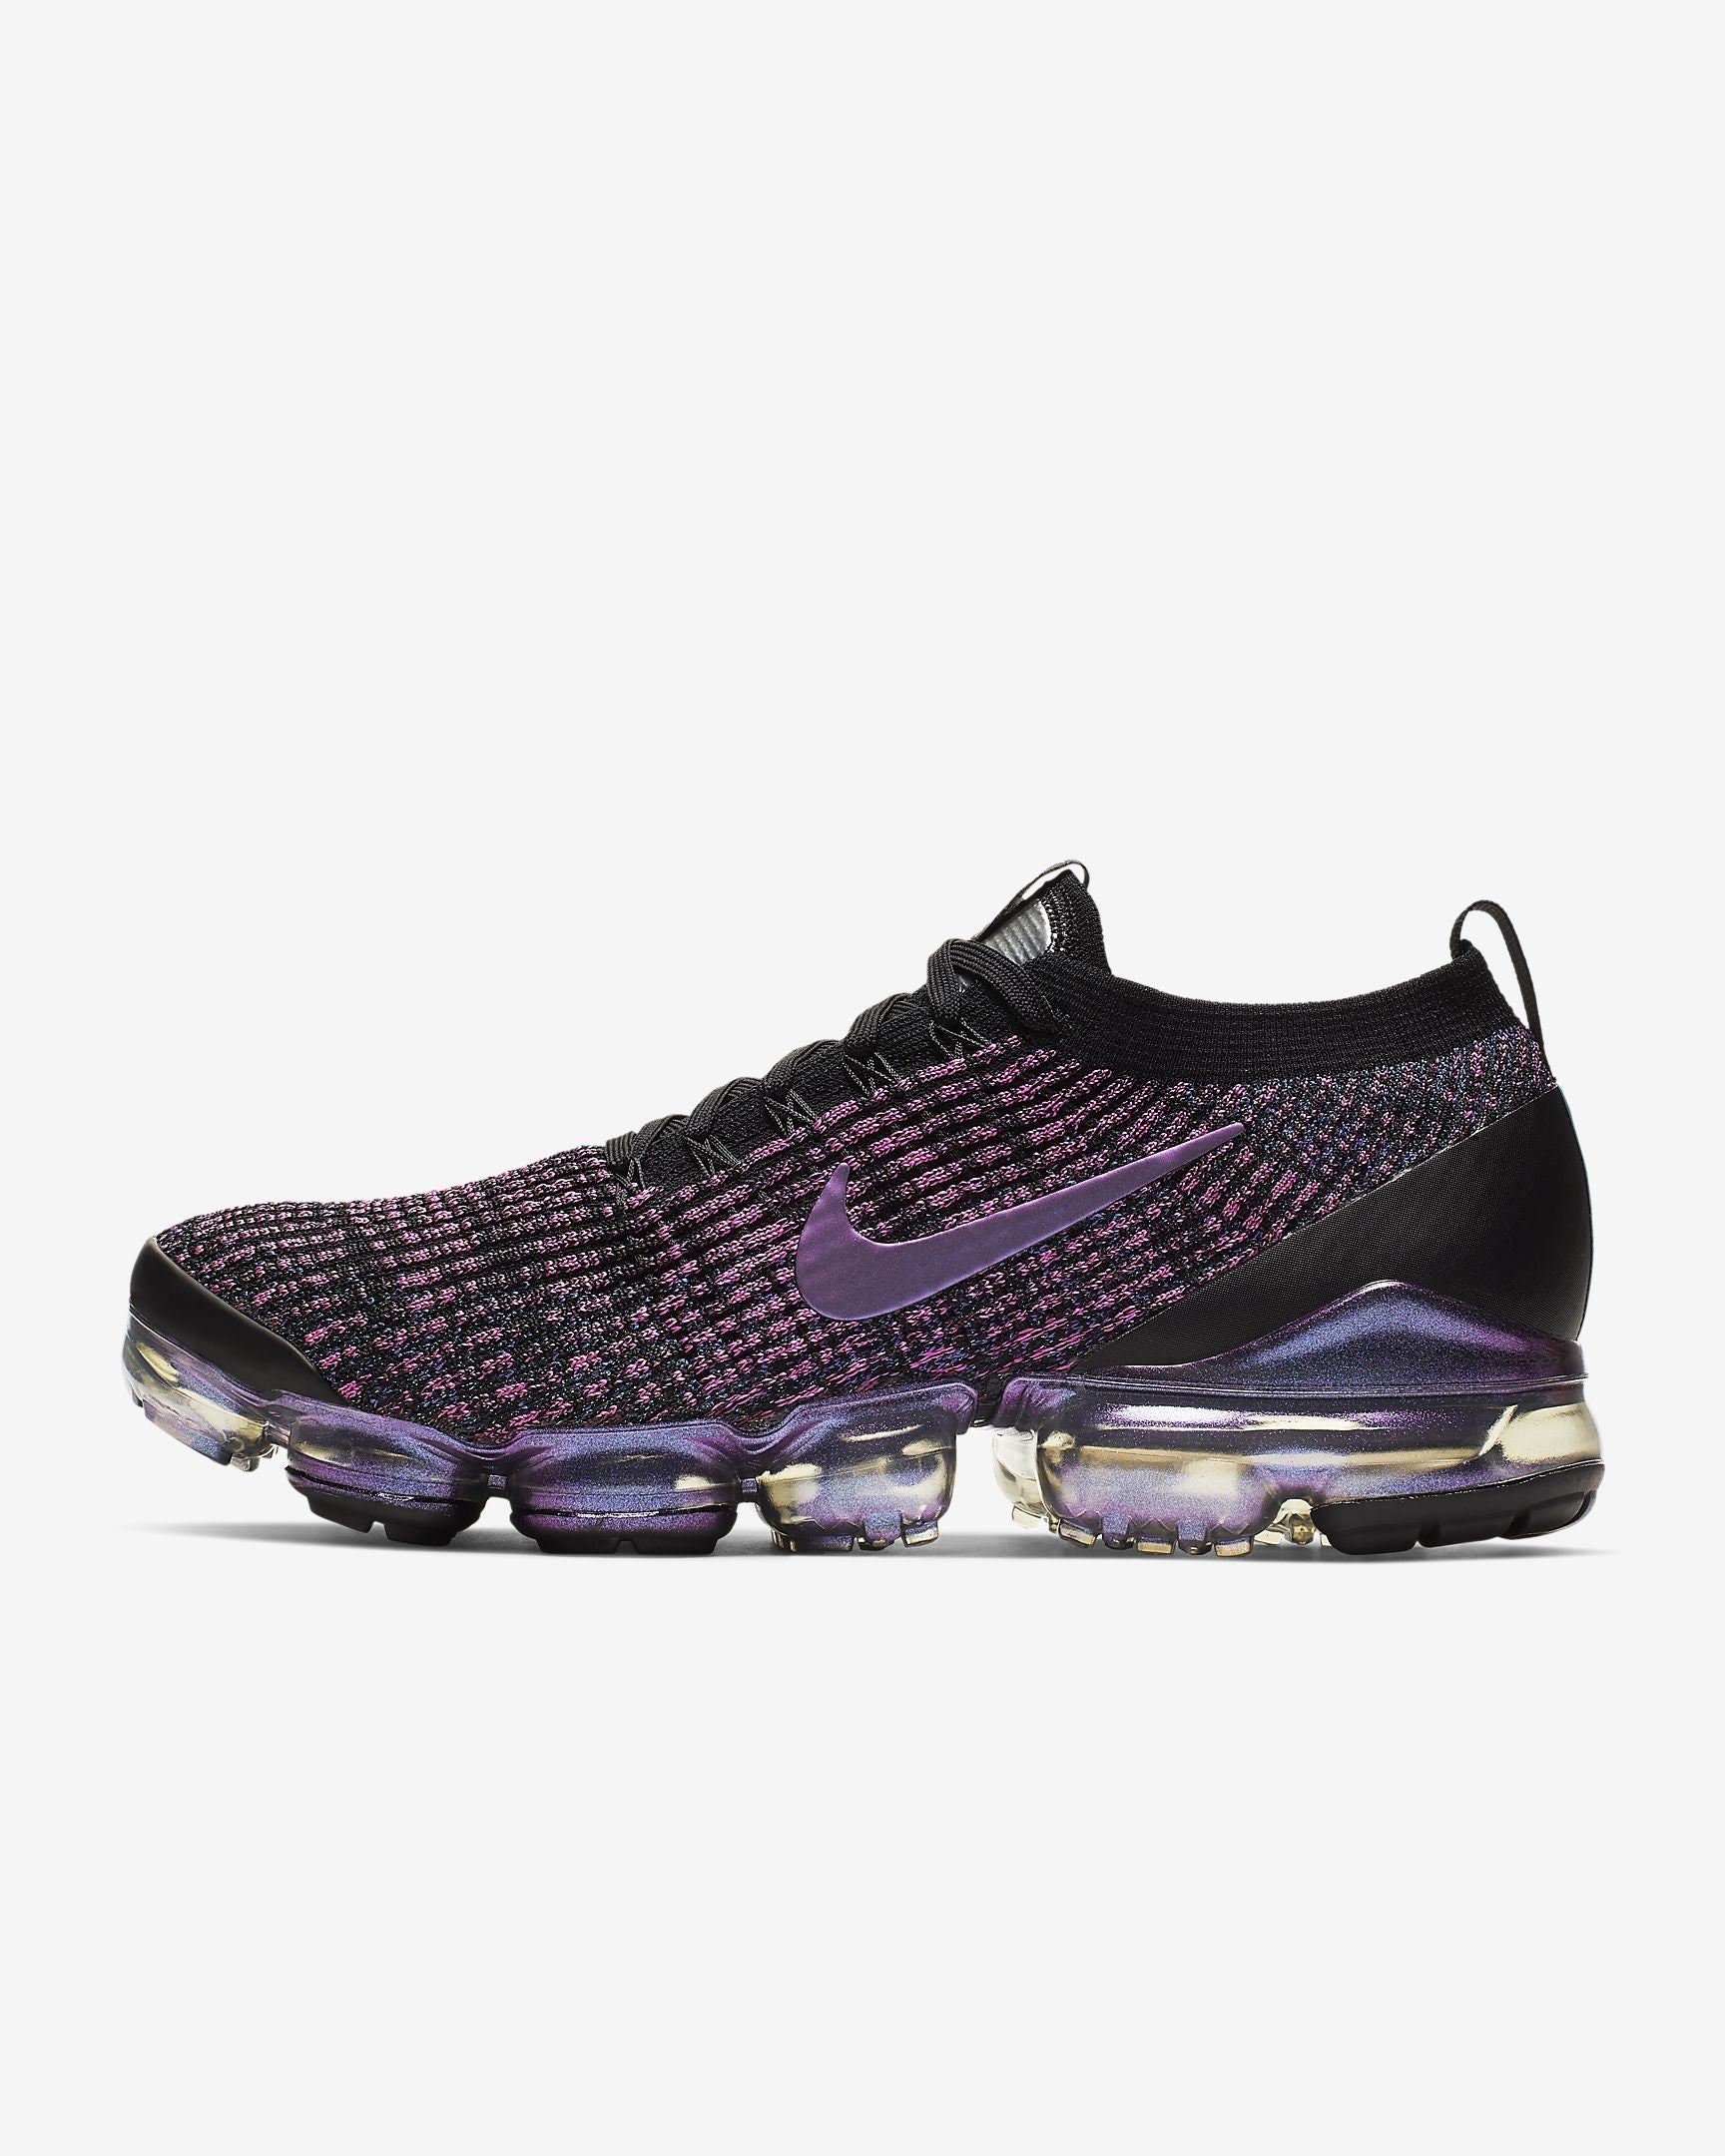 check out 3e40b 5caf0 Nike Air Vapormax Flyknit 3